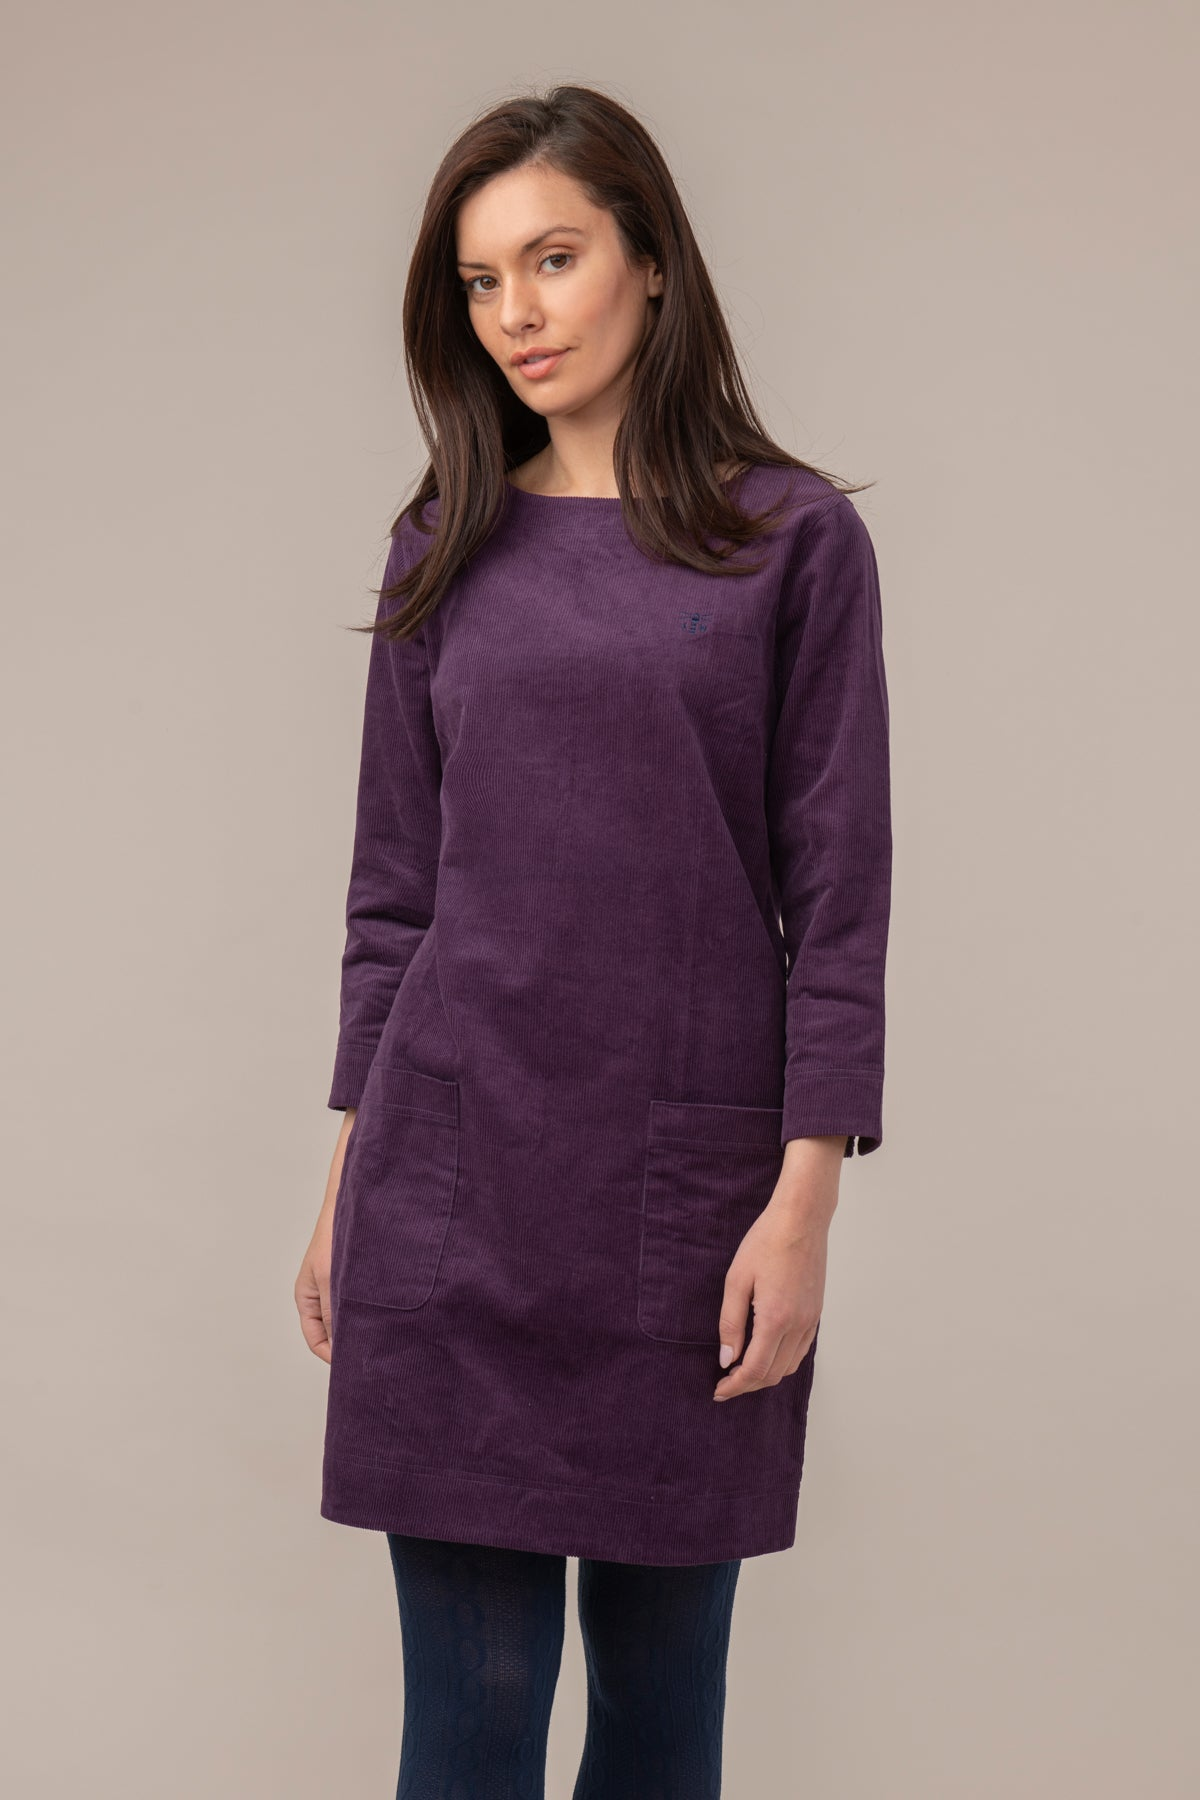 Lighthouse Anna - Womens Corderoy Dress - Blackcurrant